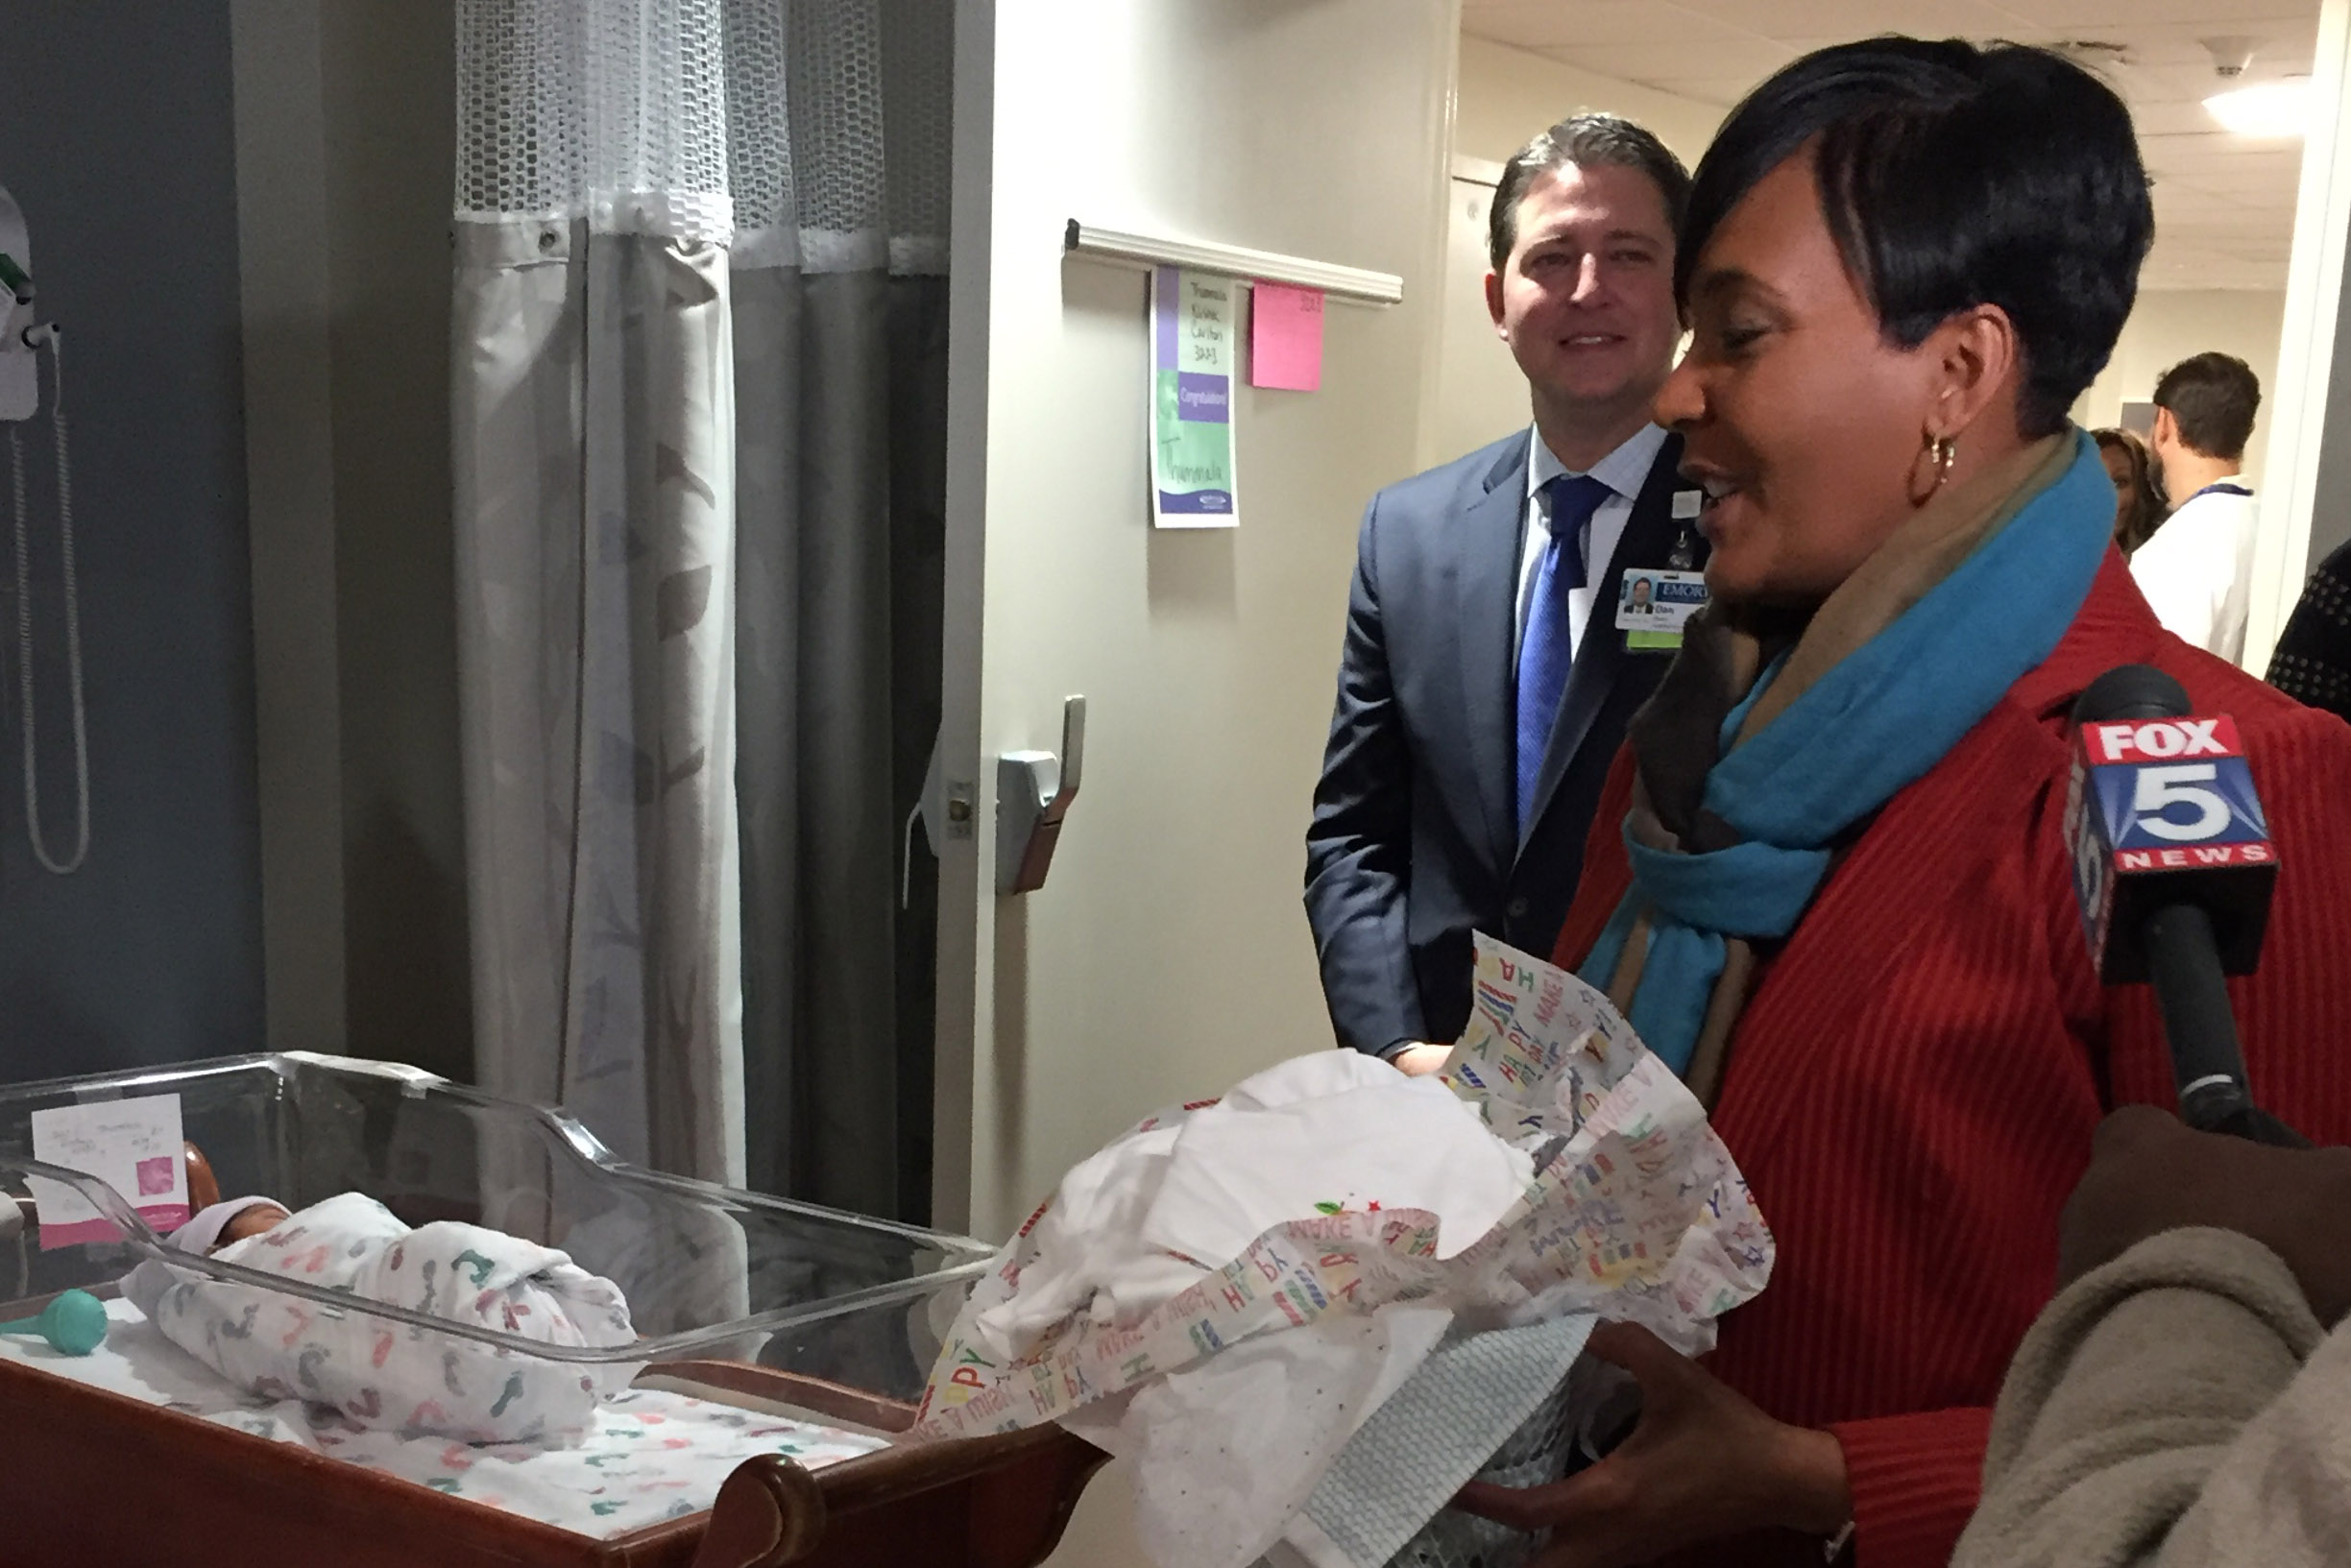 Atlanta Mayor celebrates birthday with gifts to new babies